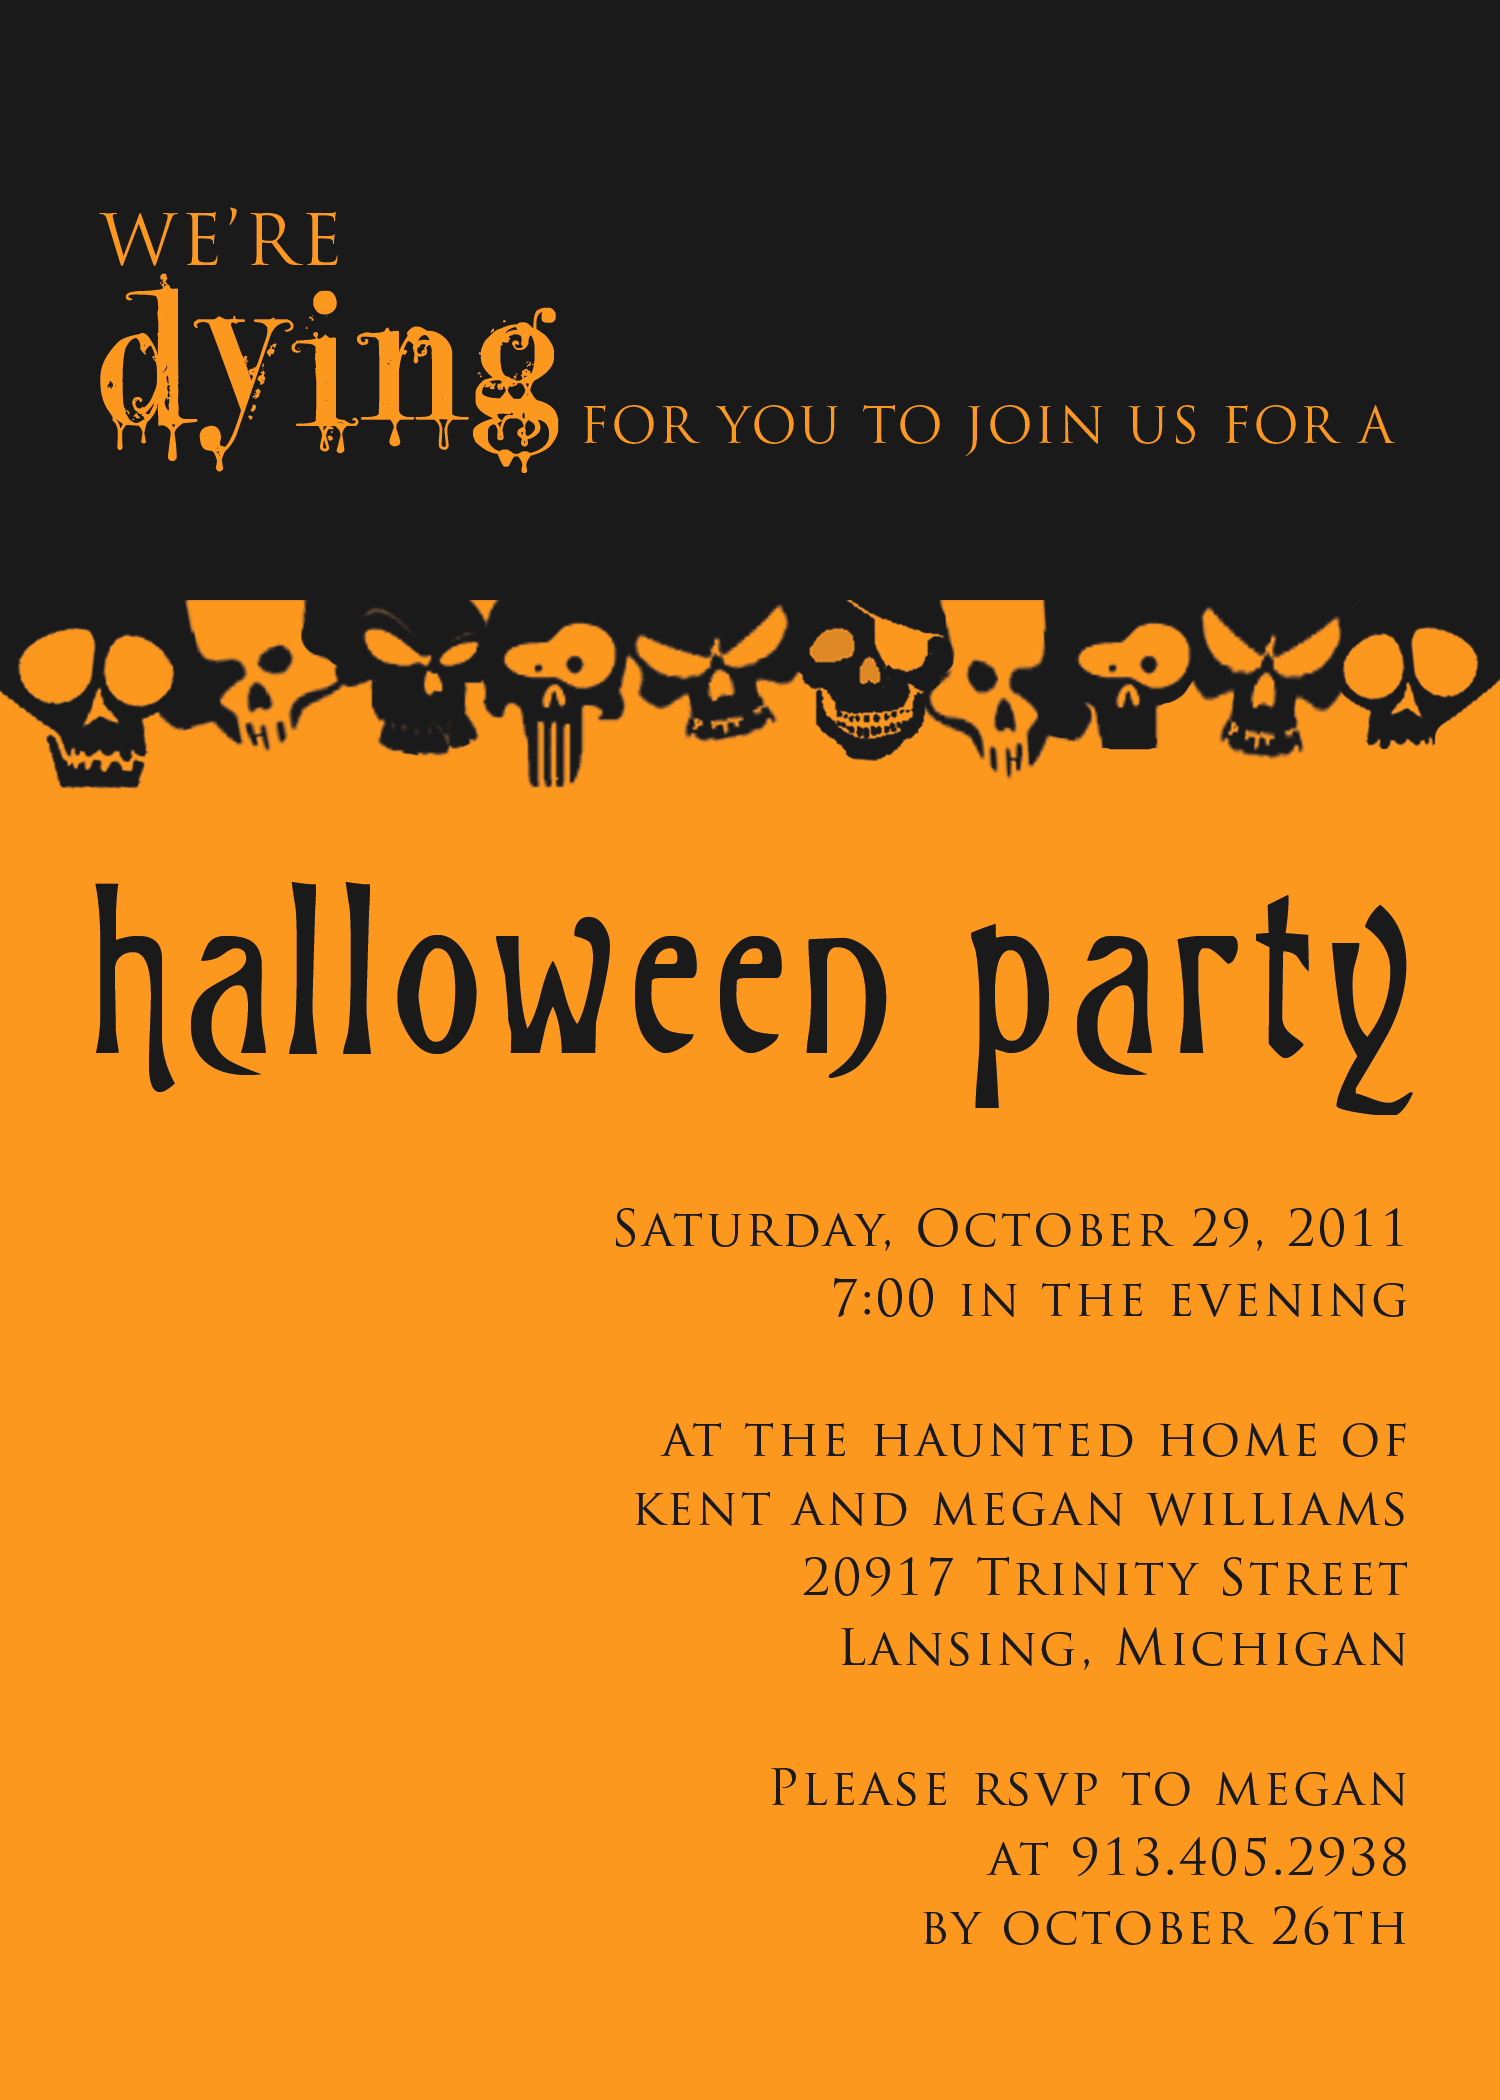 Free Halloween Invitation Template New Halloween Party Invitation Templates Free – Festival